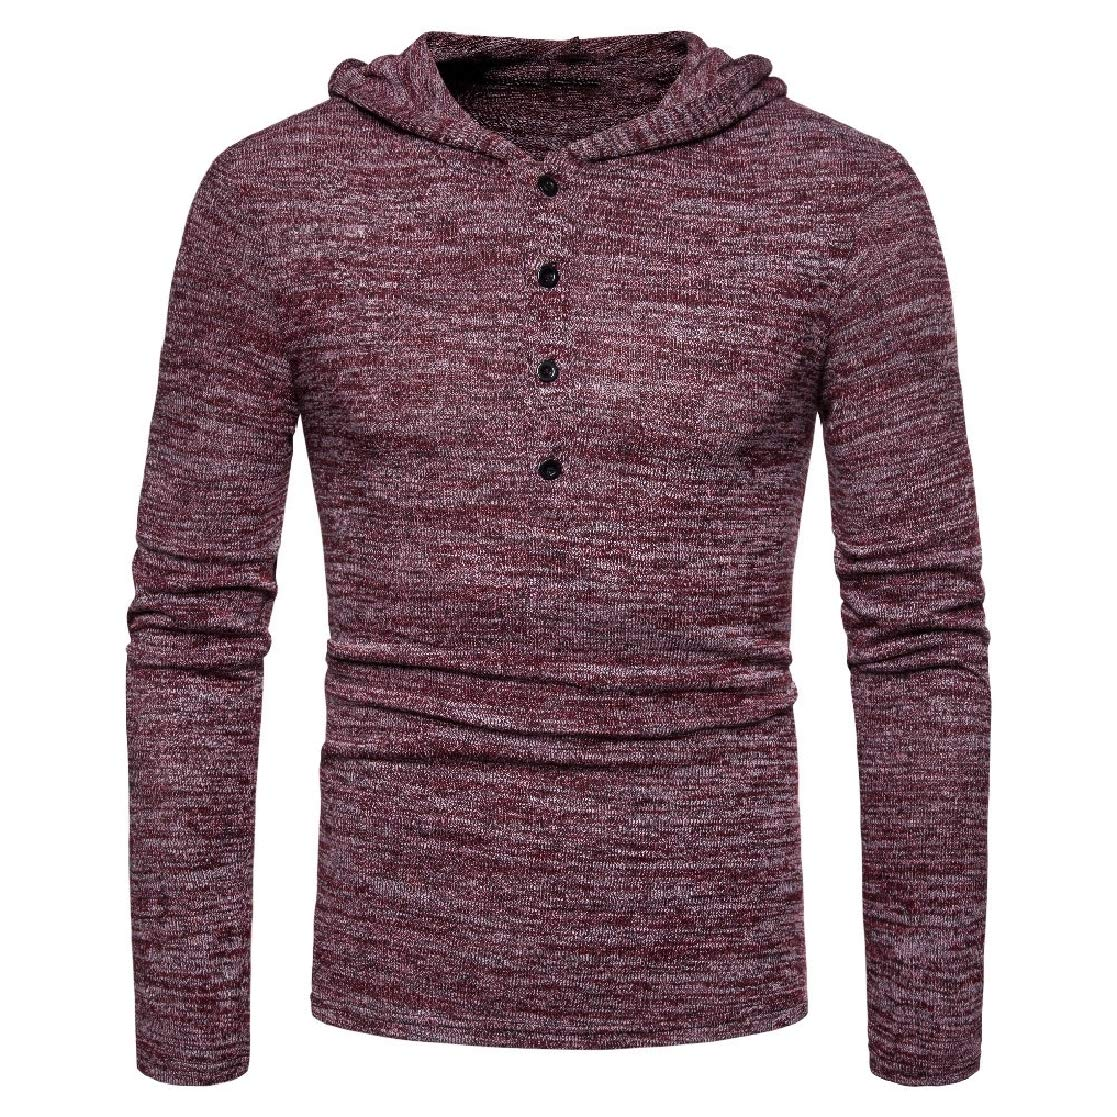 YUNY Mens Hooded Pure Long-Sleeve T-Shirts Pullover Casual Sweatshirts AS2 XL